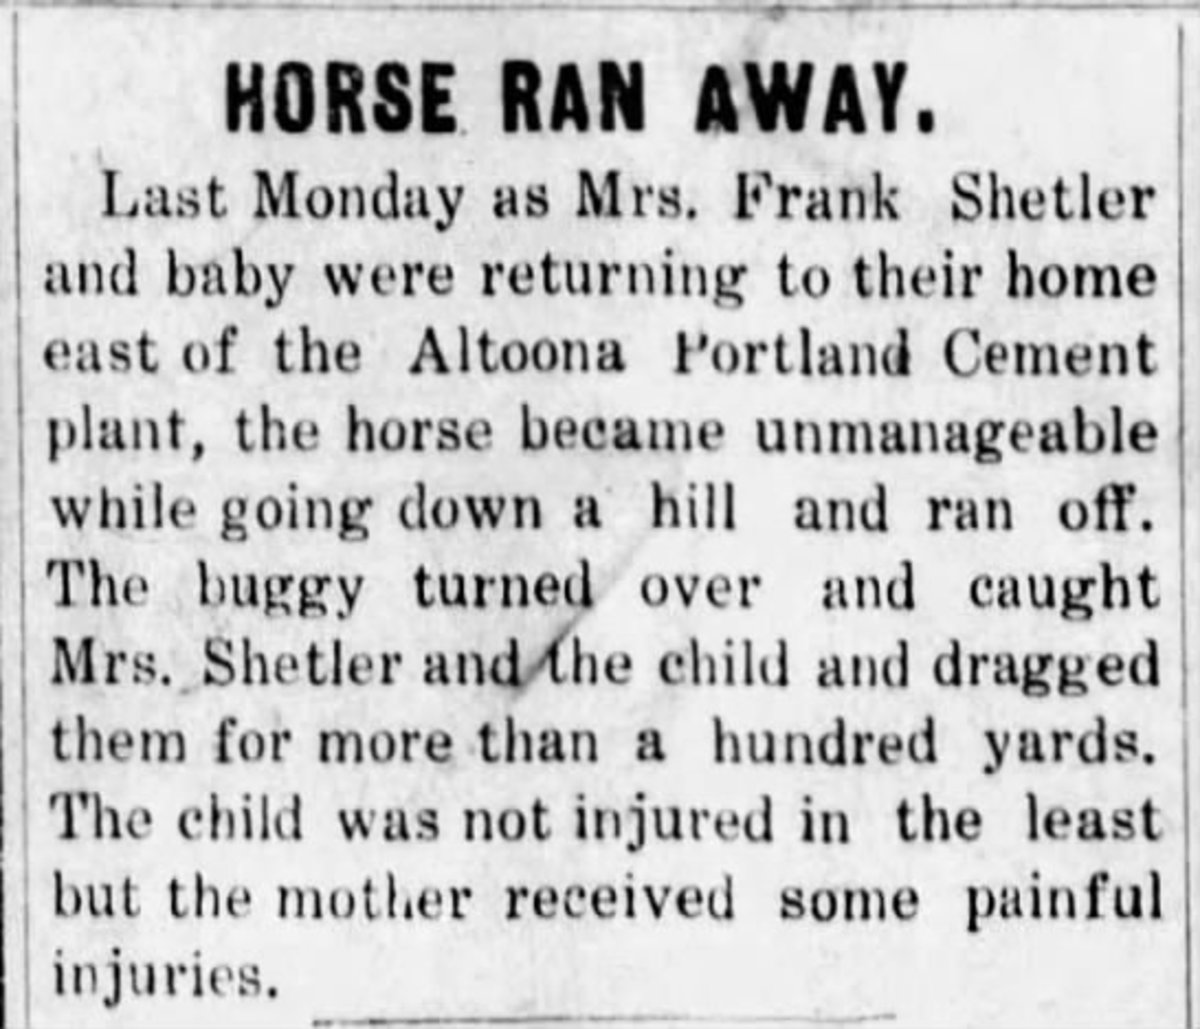 Story about a runaway horse ending in a buggy accident for a mother and child. Altoona Tribune  (Altoona, Kansas) 11 Aug 1910, Thu  • Page 1